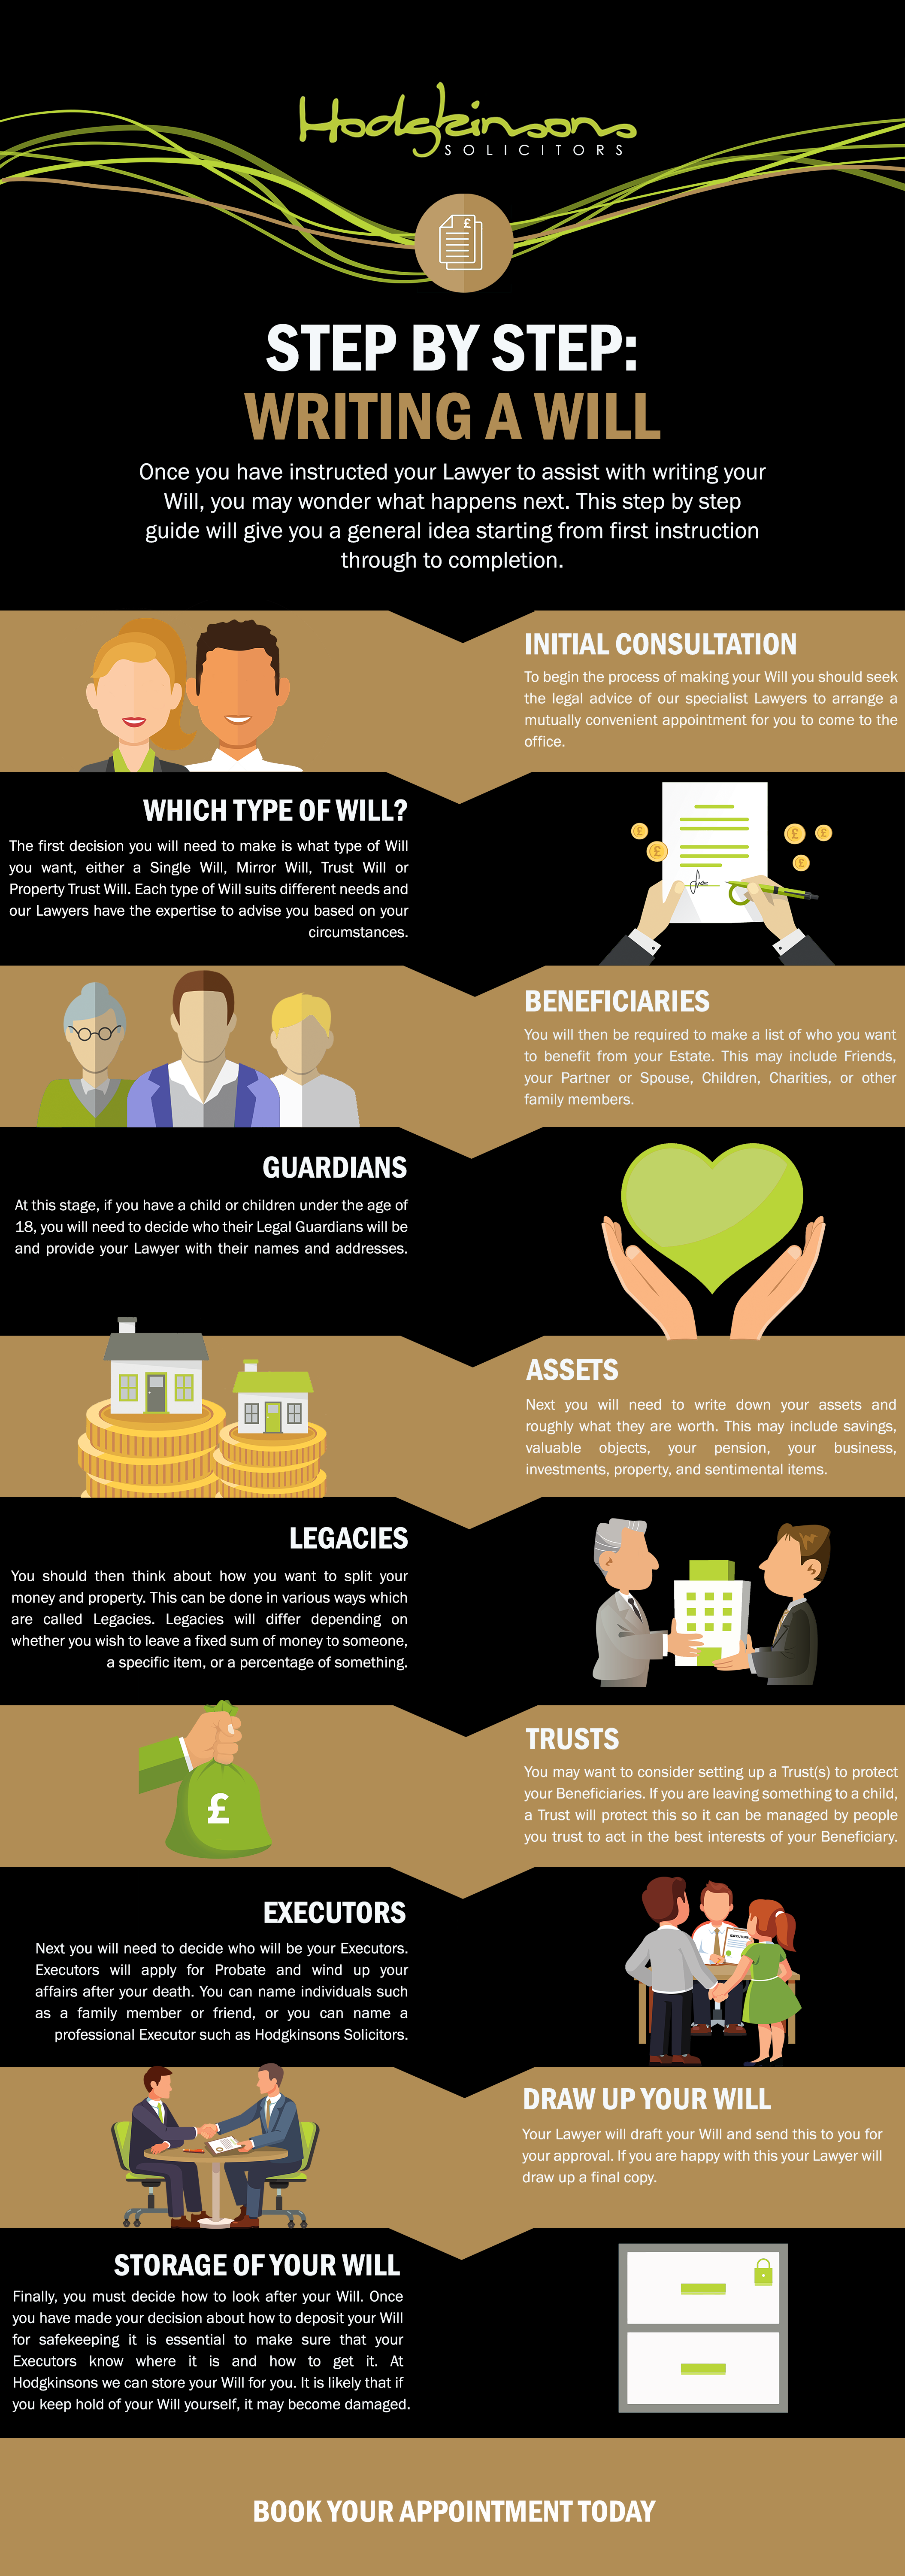 A Step By Step Guide To Writing A Will